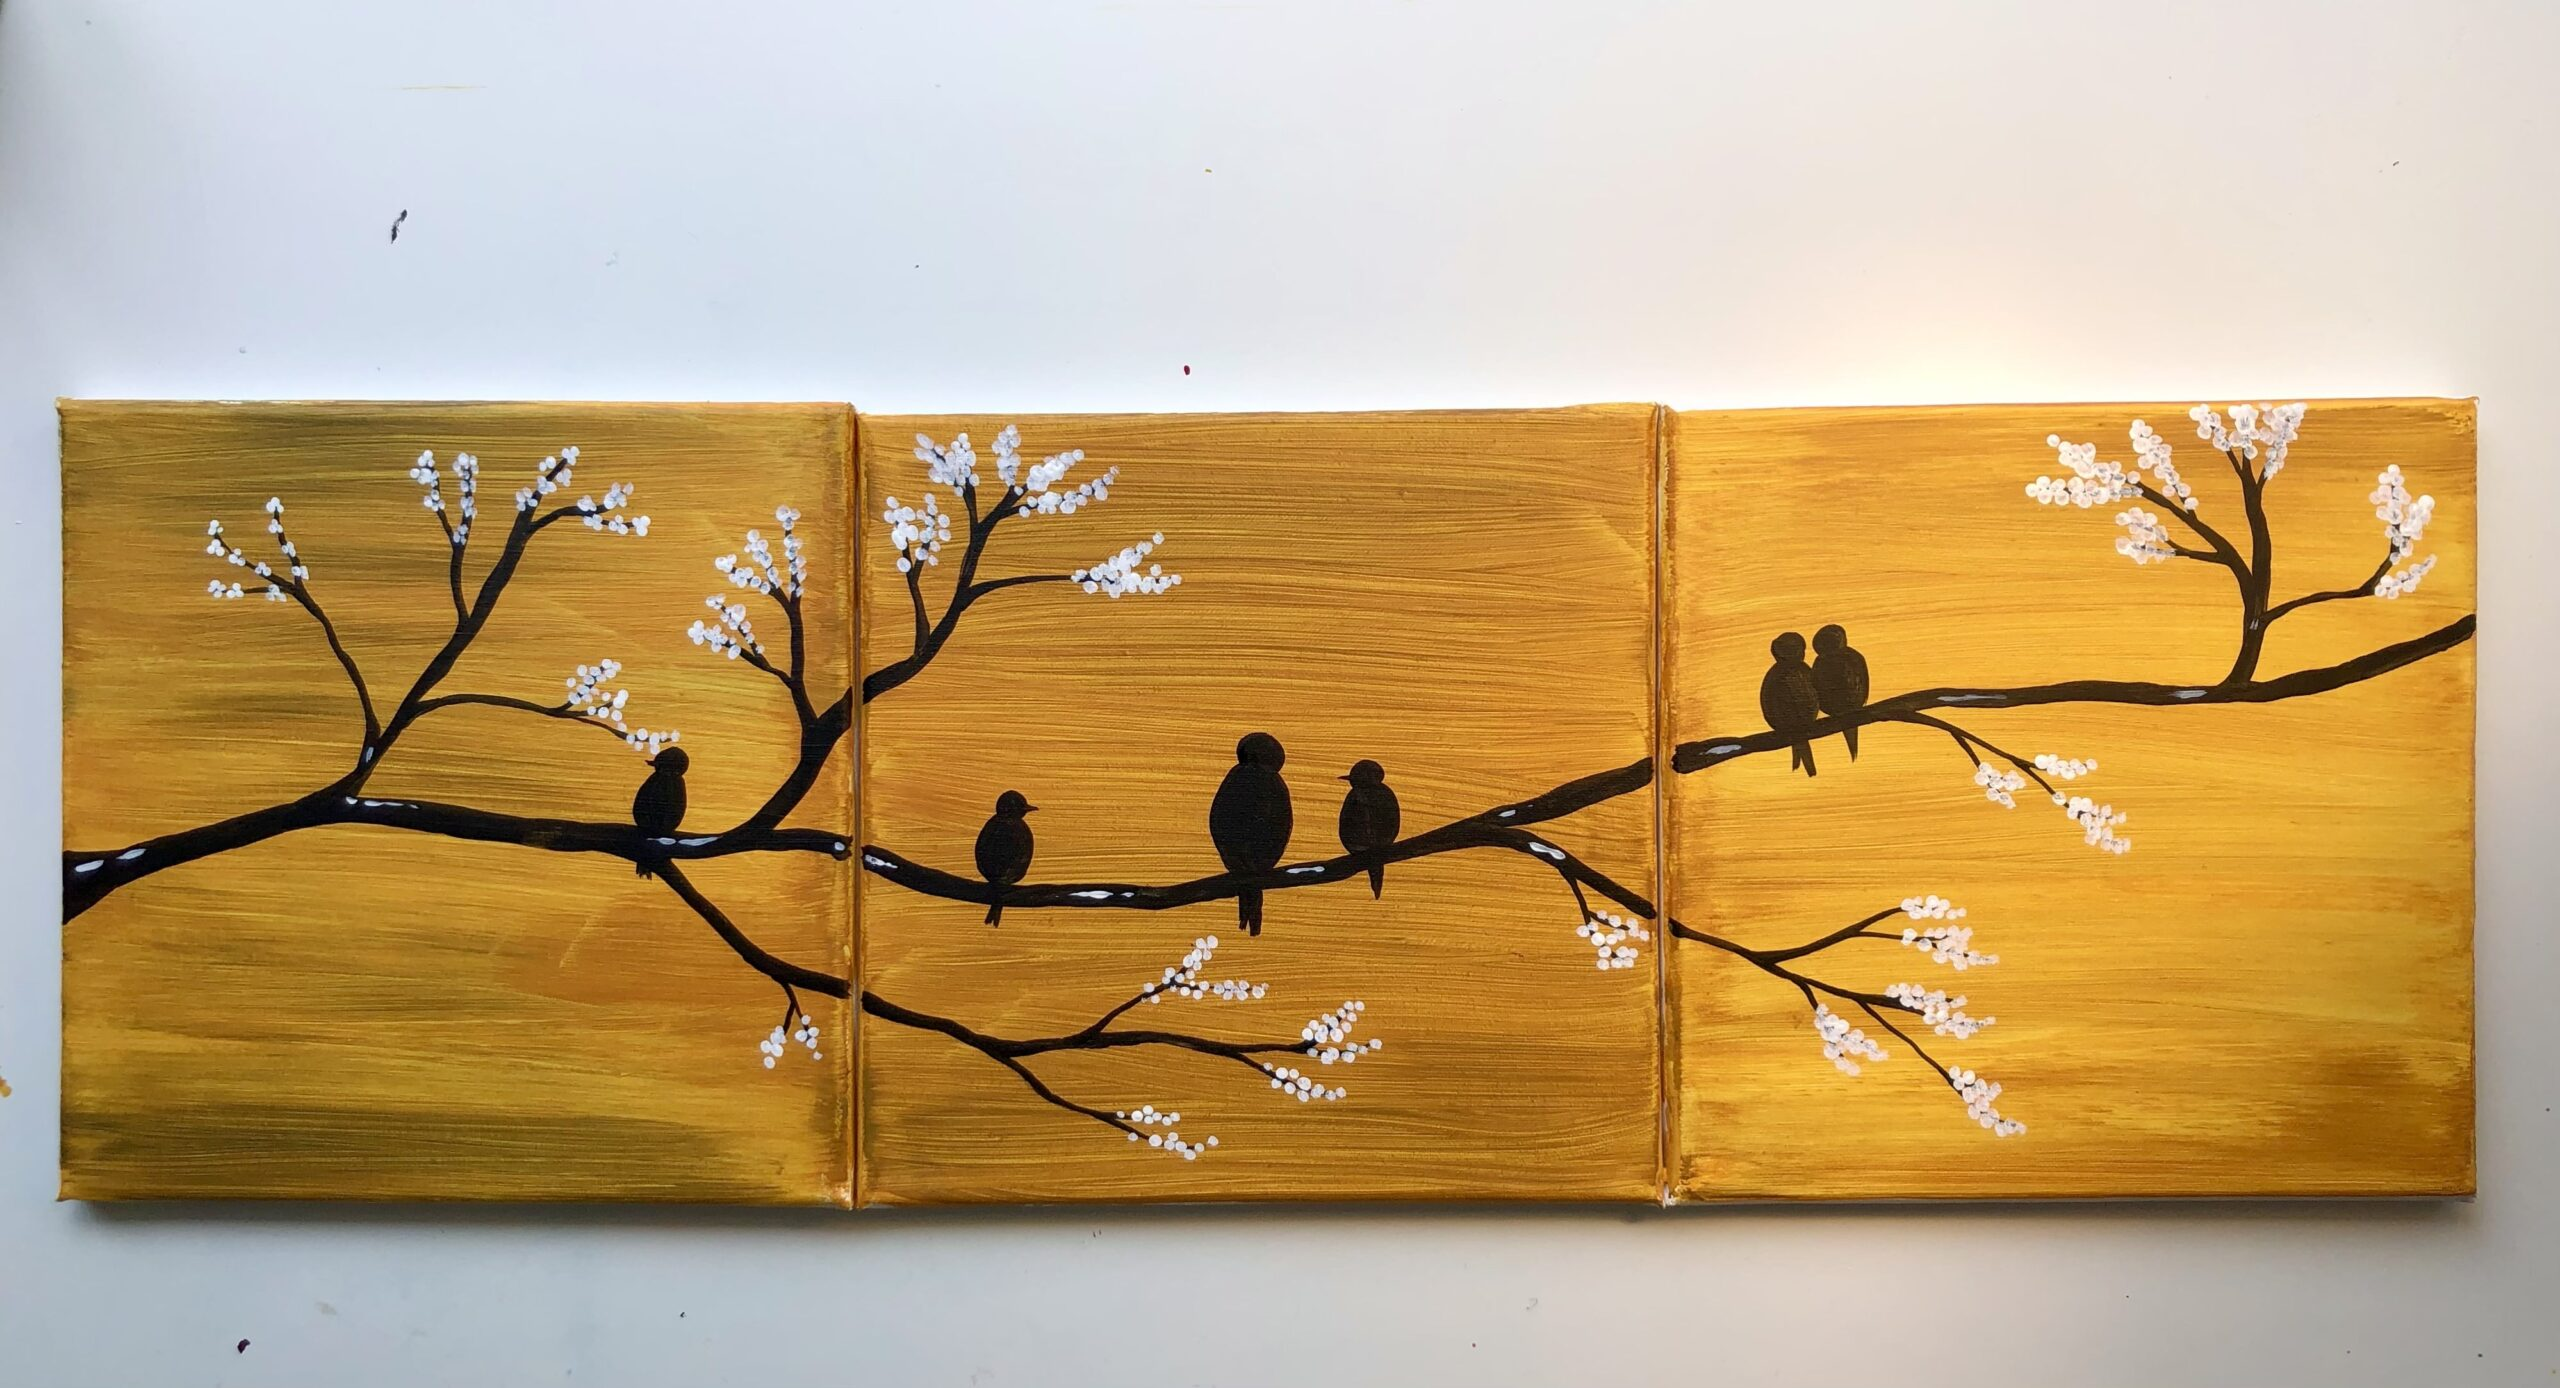 Family of birds on a branch